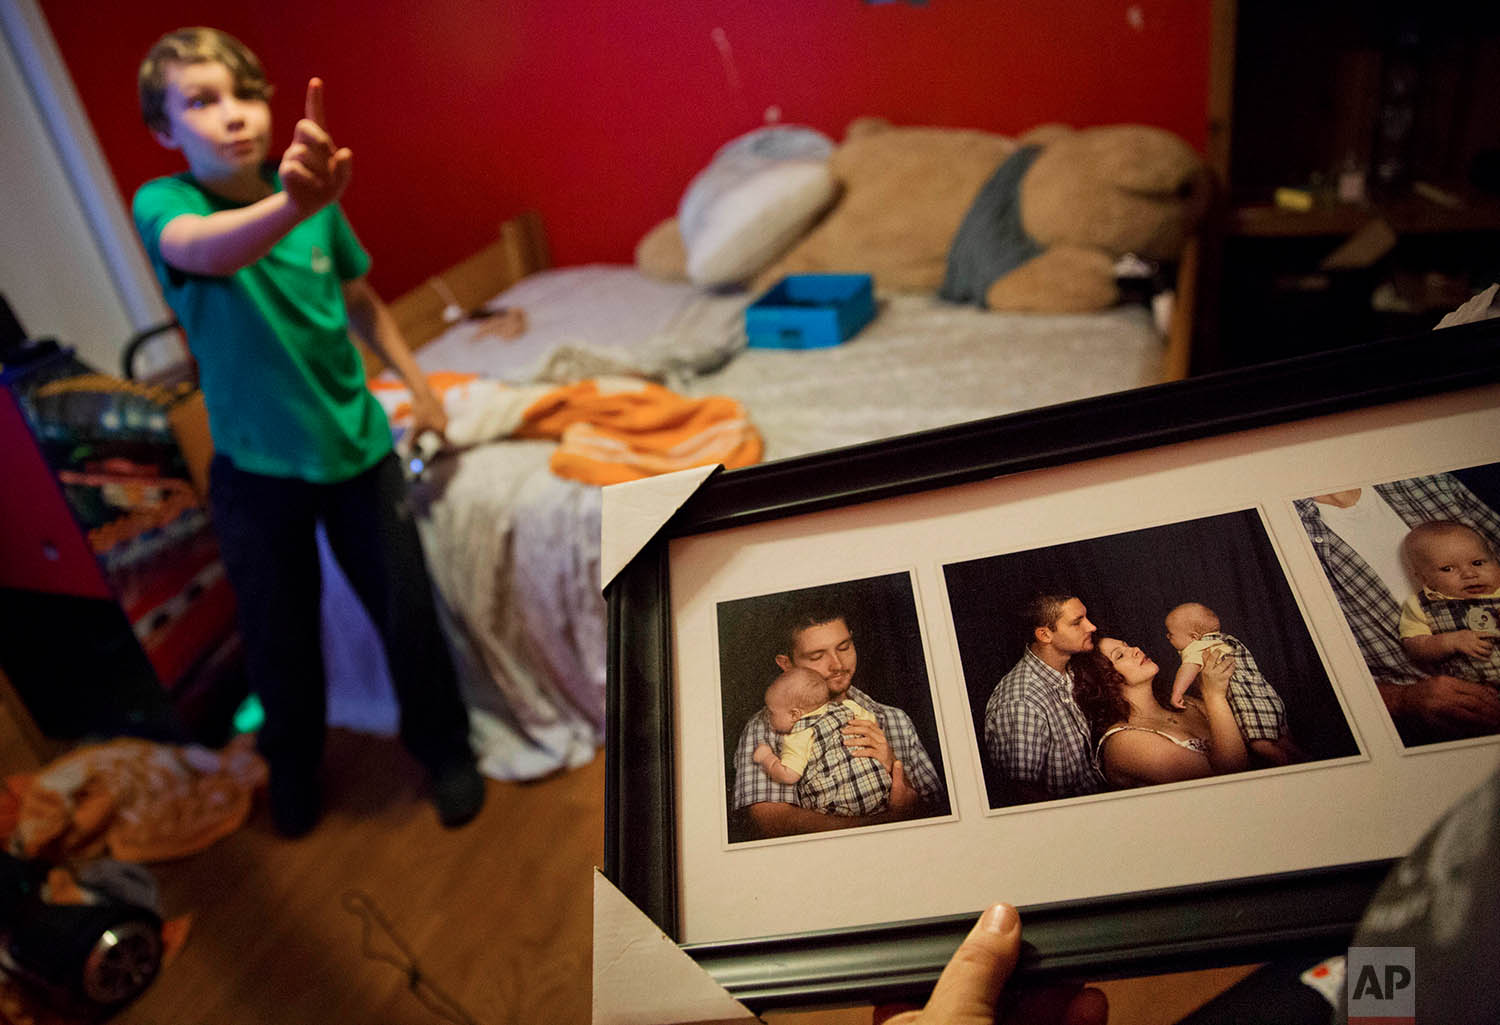 """Eddy Sweat, looks at baby photos of his grandson Robby Wilson, who is standing on the left, in Jacksboro, Tenn., Monday, April 23, 2018. The absence of his mother, Krystle Sweat, has taken its toll on Robby, says his grandmother, Cathy Sweat. """"Even at his happiest,"""" she says, """"he's not happy."""" (AP Photo/David Goldman)"""